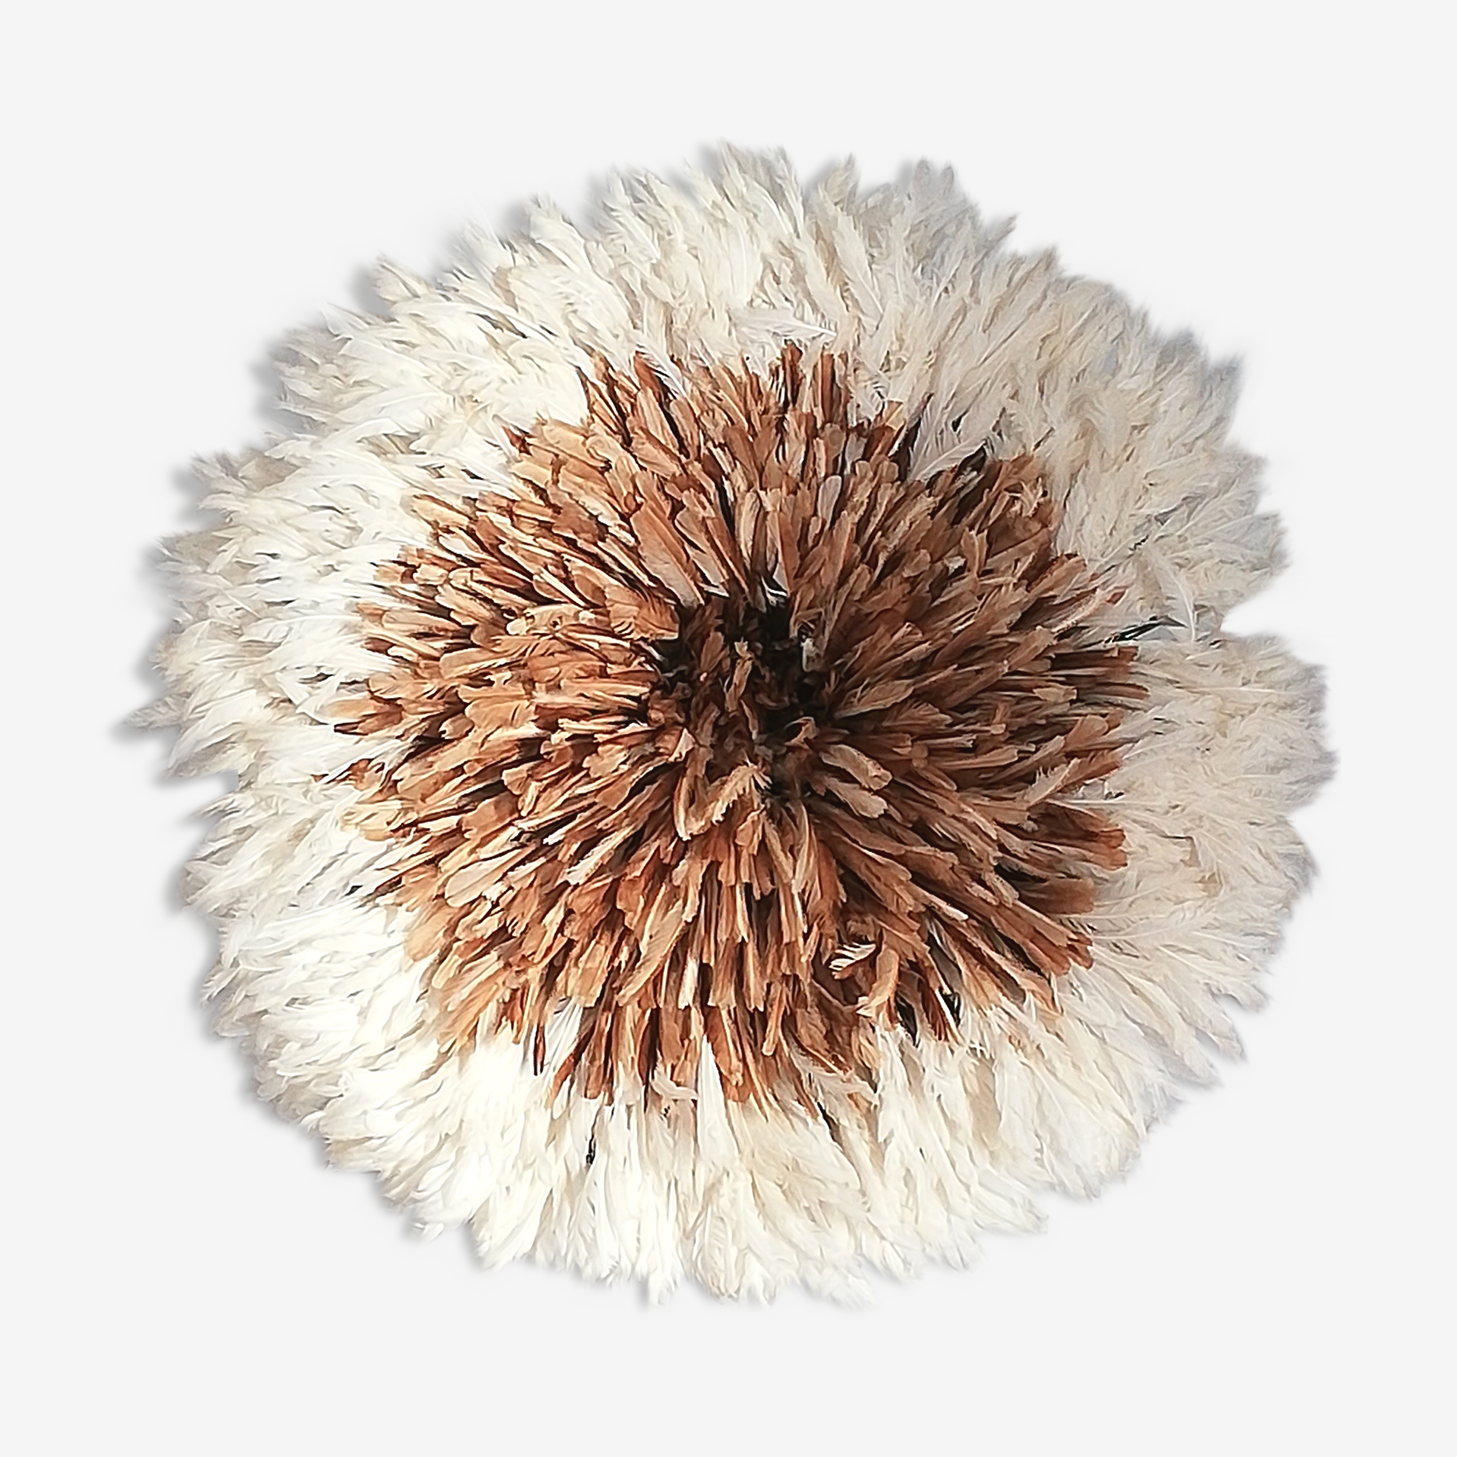 Juju hat naturel et blanc 75cm